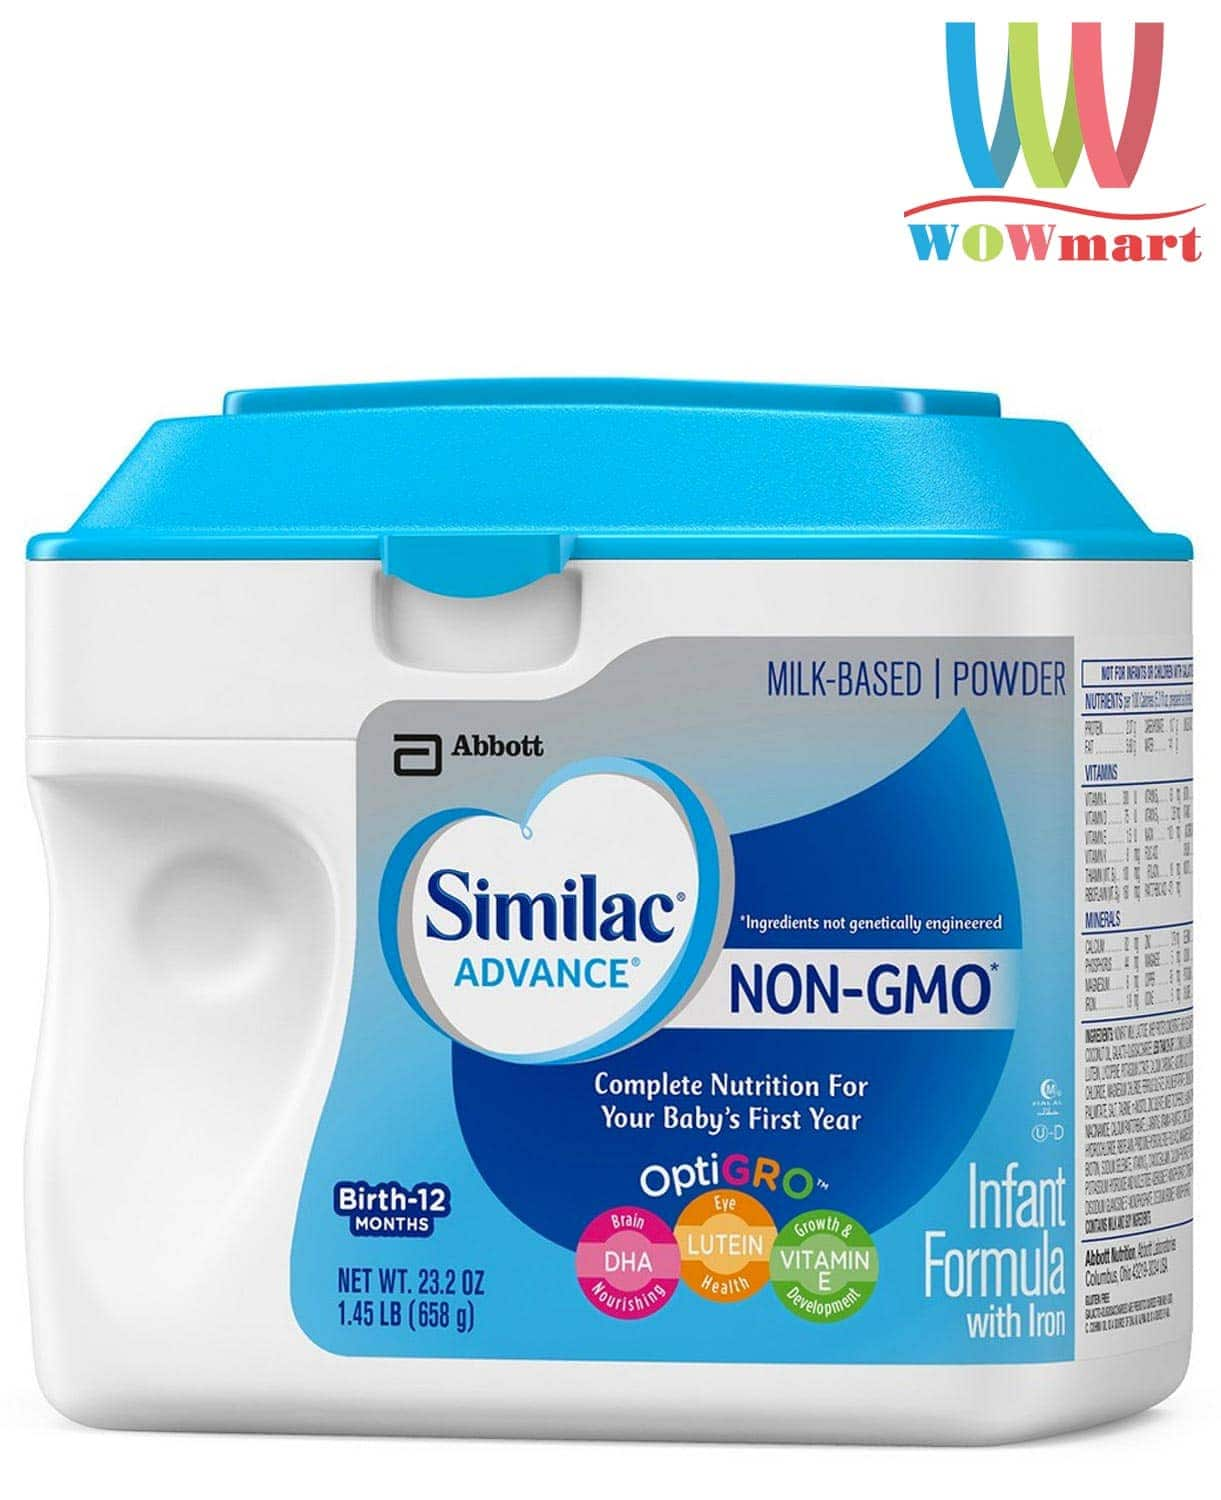 sua-bot-similac-danh-cho-tu-0-12-thang-similac-advanced-non-gmo-optigro-658g-2018b